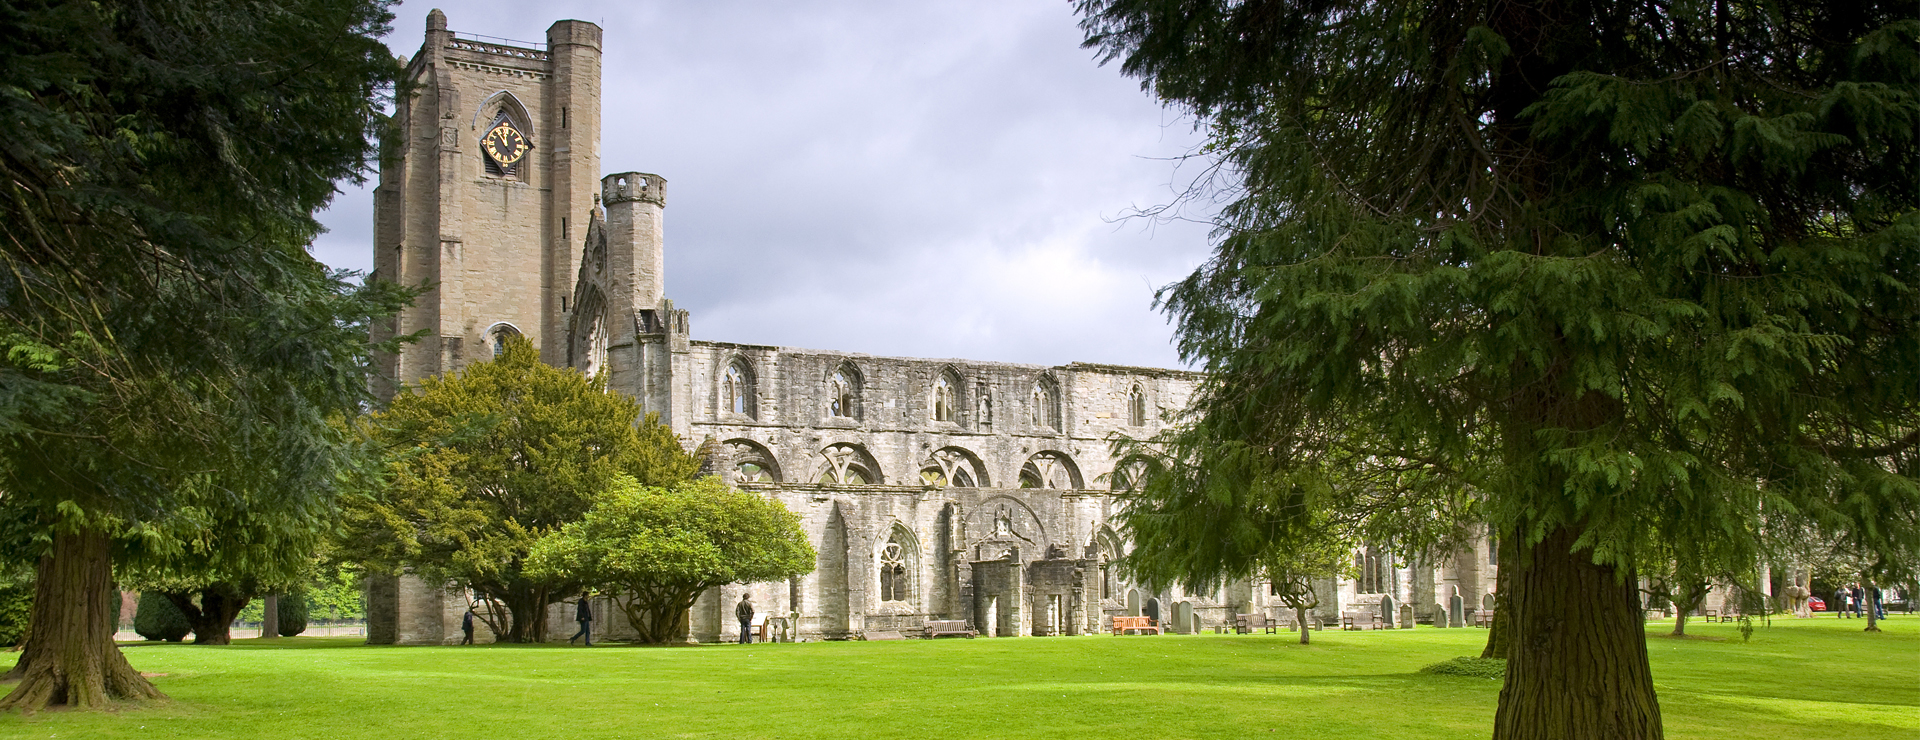 Dunkeld Cathedral & picturesque town in the Highlands of Scotland